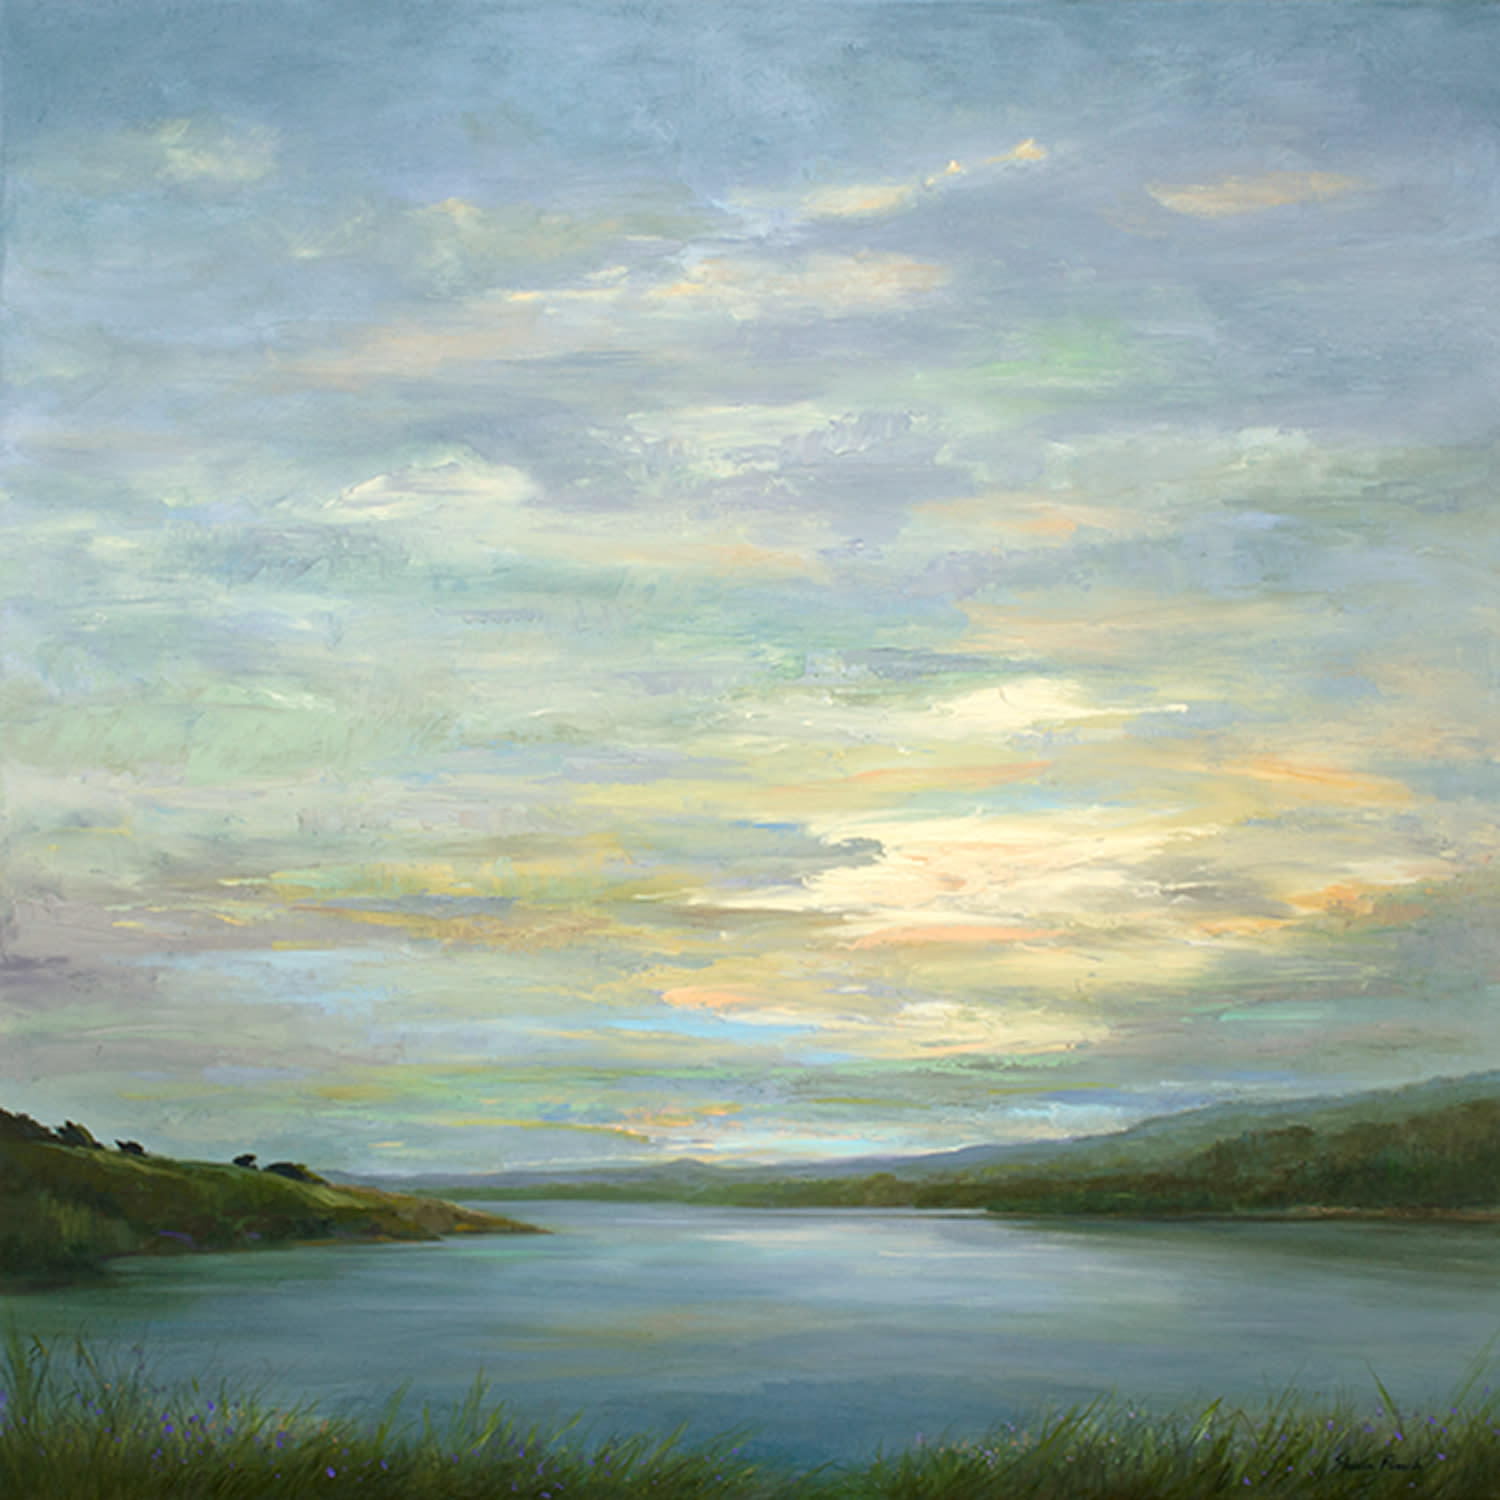 4500 crystal springs light show 36x36 oil ek29a7